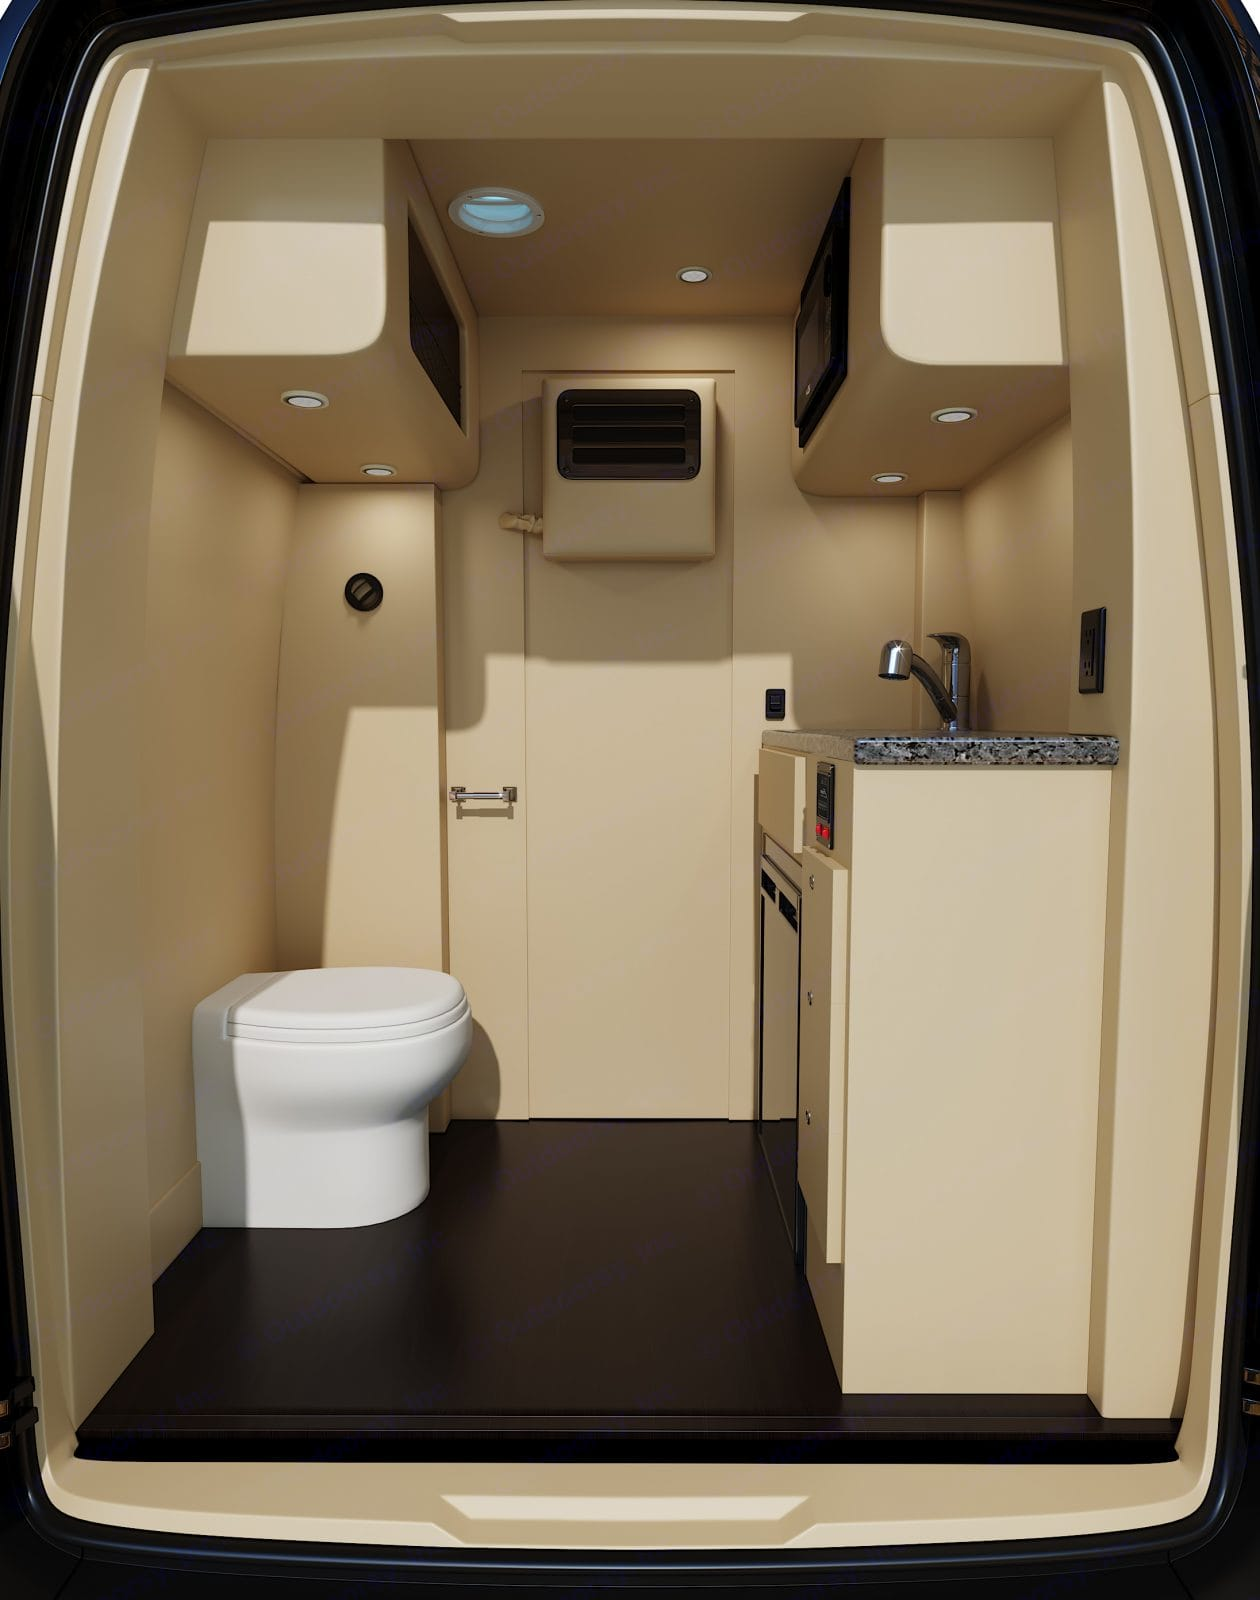 There's a microwave, sink & dorm size fridge located in the bathroom along with the toilet.  Cabin storage is located above as well. . Mercedes-Benz Sprinter 2021